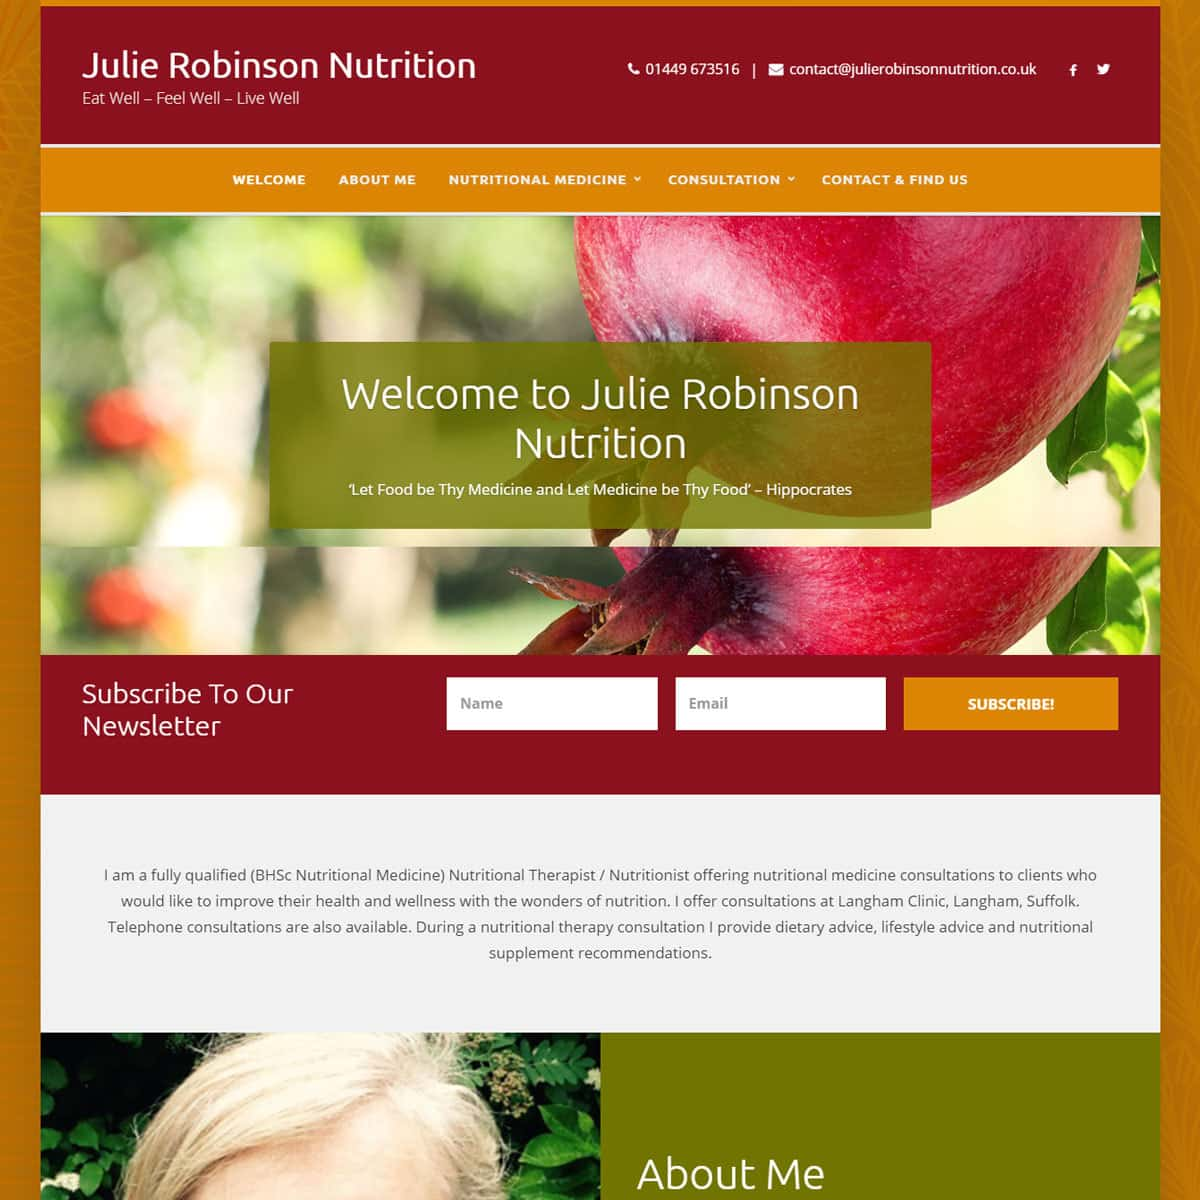 julierobinsonnutrition